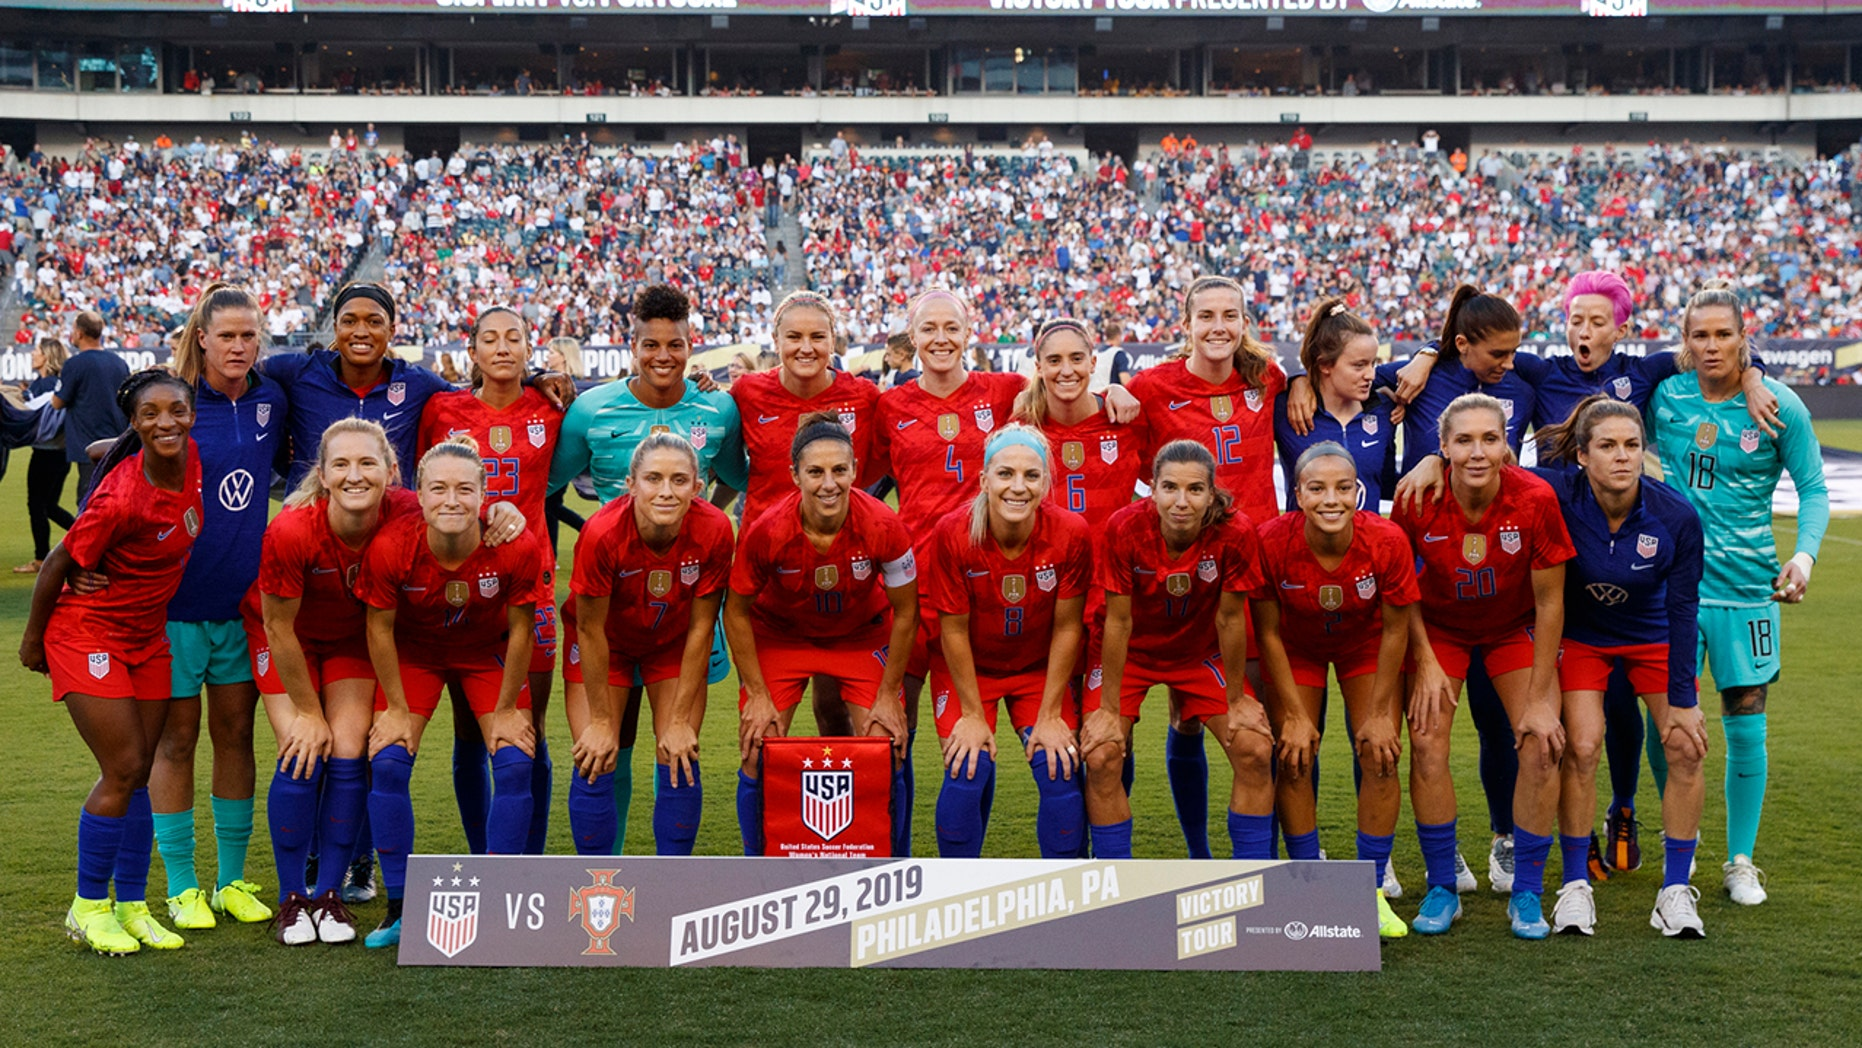 U.S. players pose for photos before an international friendly soccer match against Portugal, Thursday, Aug. 29, 2019, in Philadelphia. (AP Photo/Matt Slocum)